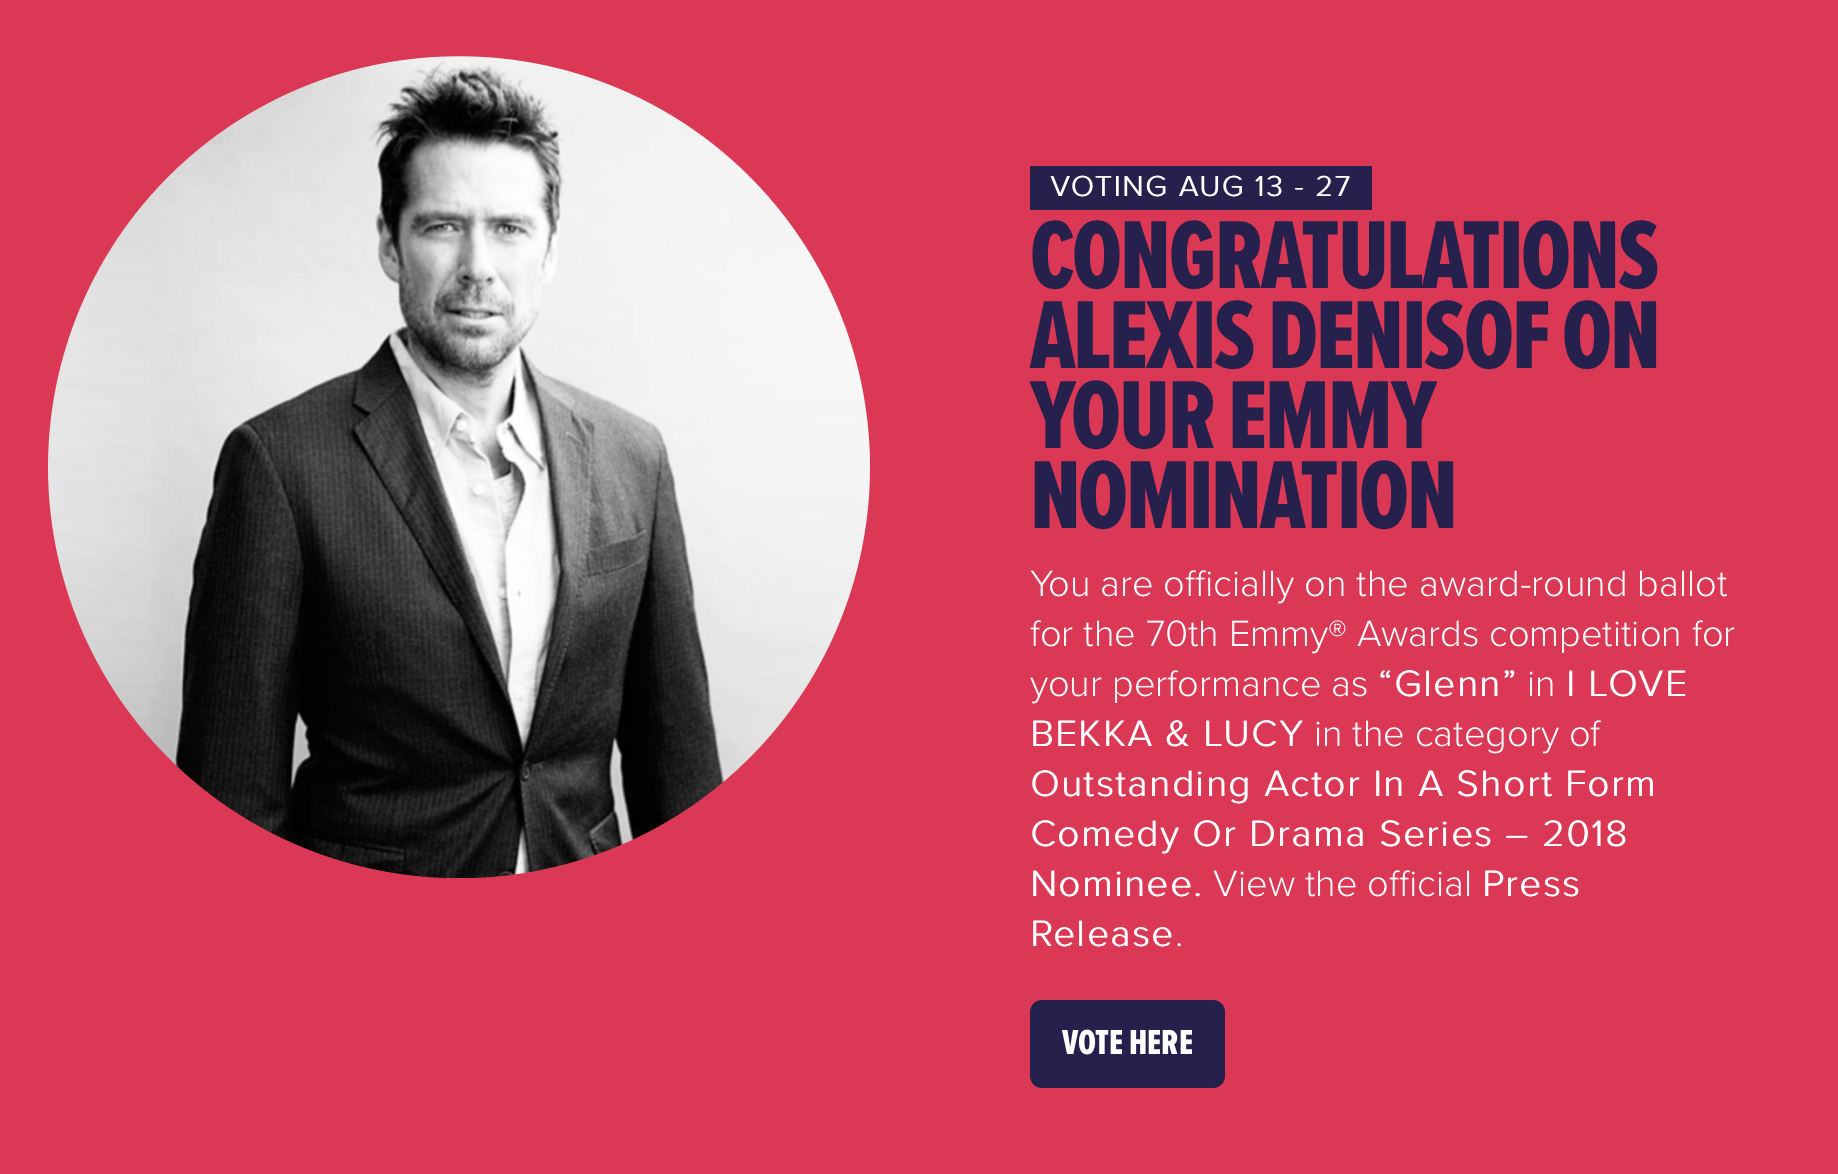 Stage 13 Emmy voting Alexis Denisof